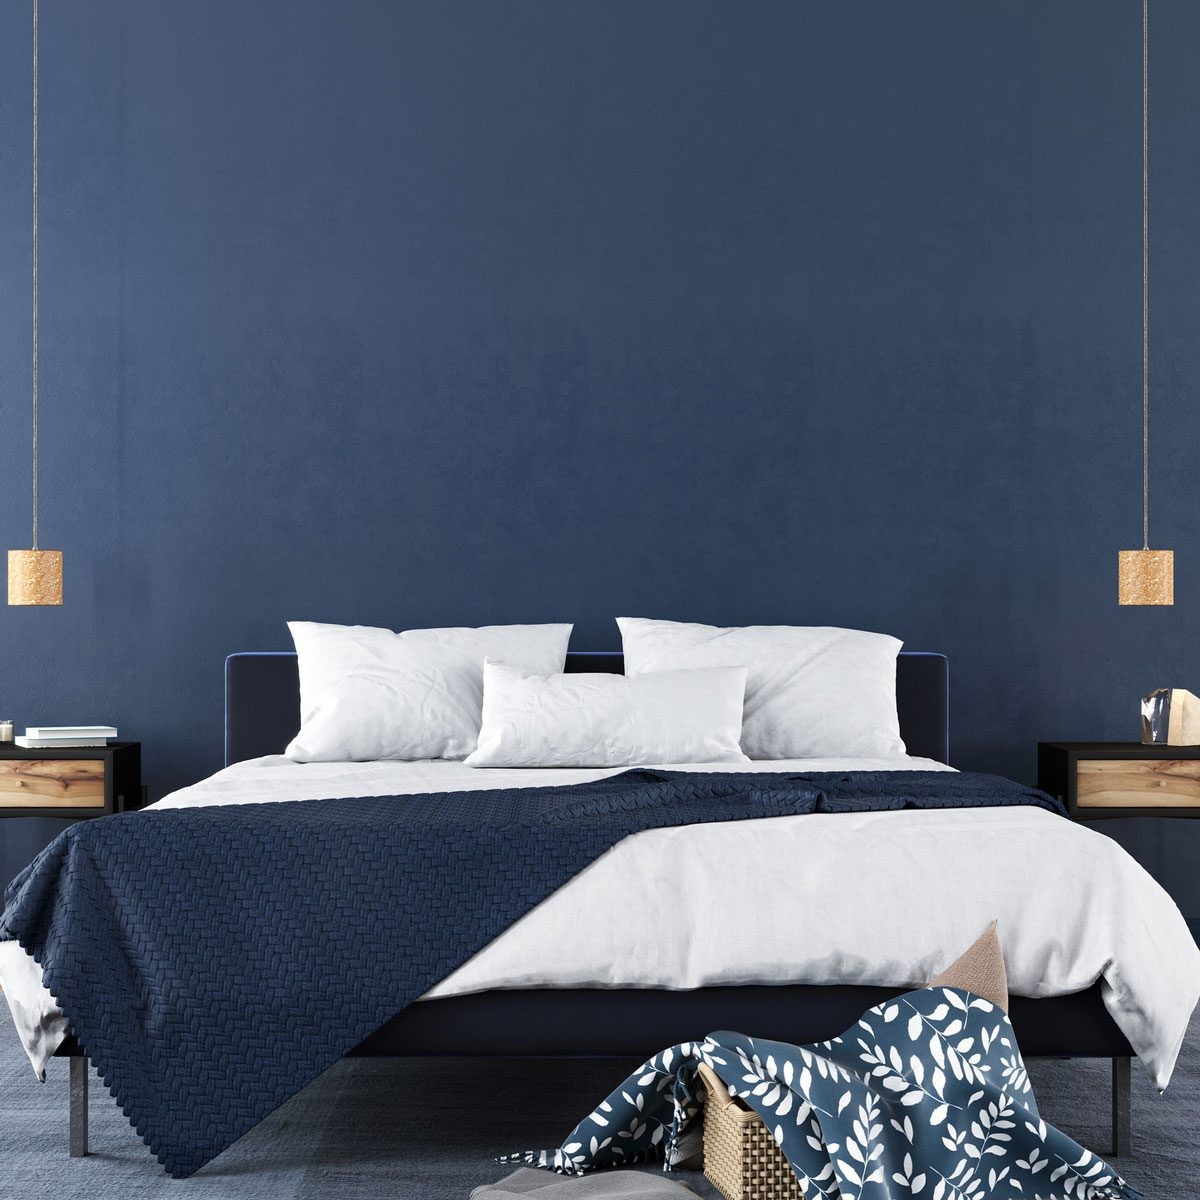 Bedroom with navy blue walls and accents